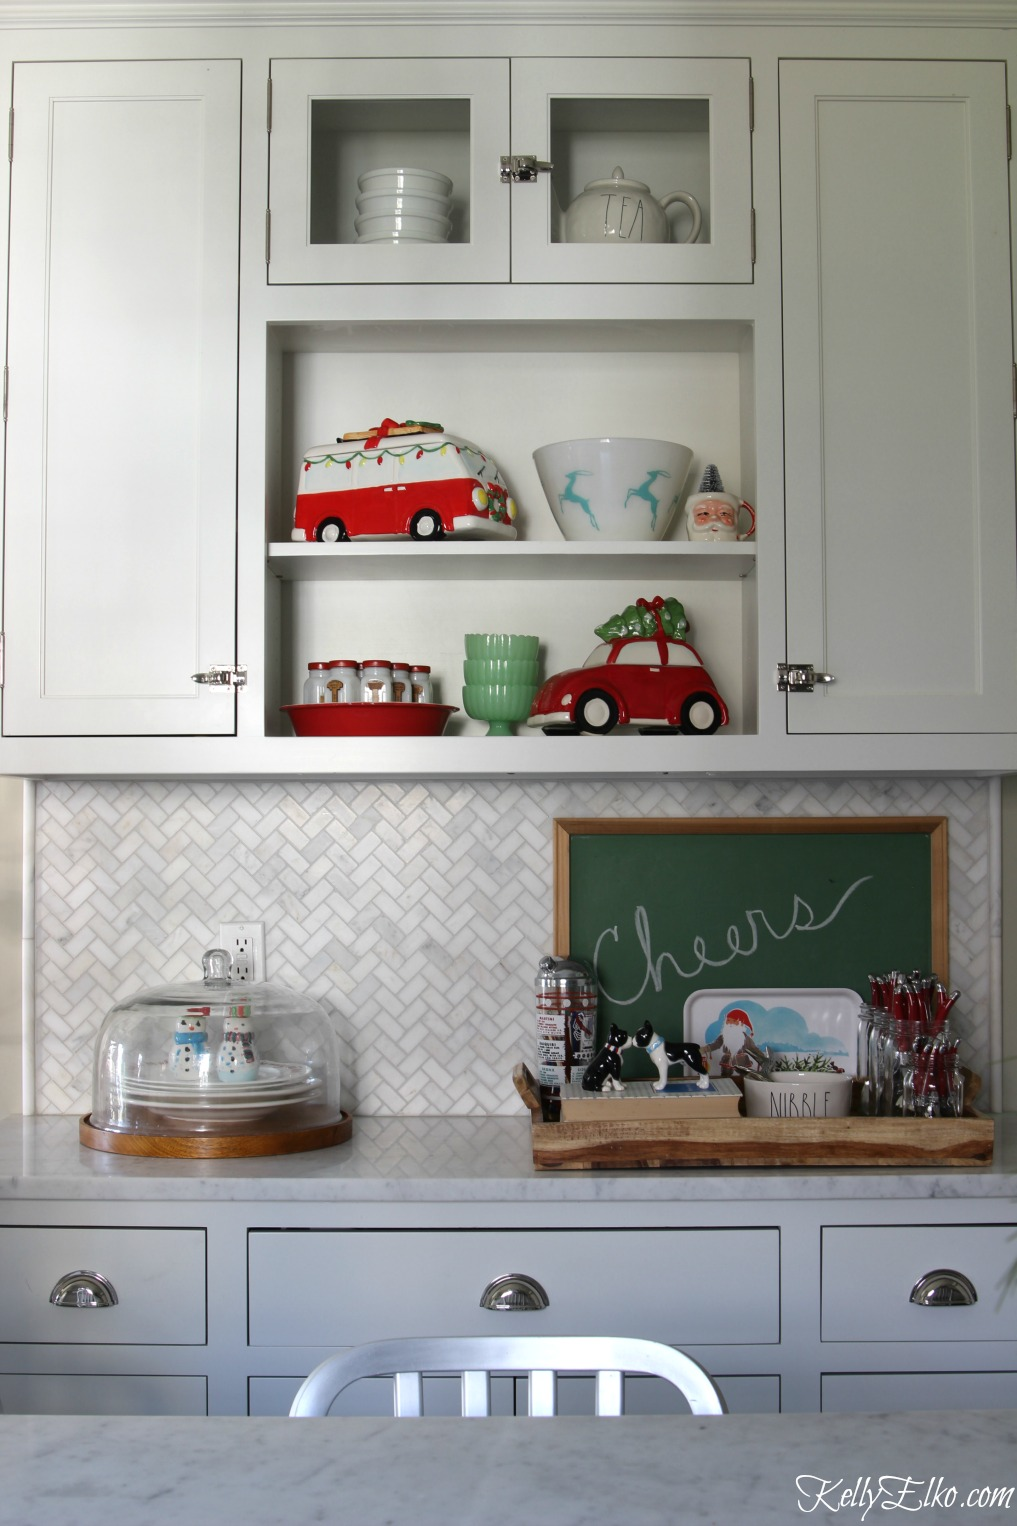 Christmas shelves and festive cookie jars in the kitchen kellyelko.com